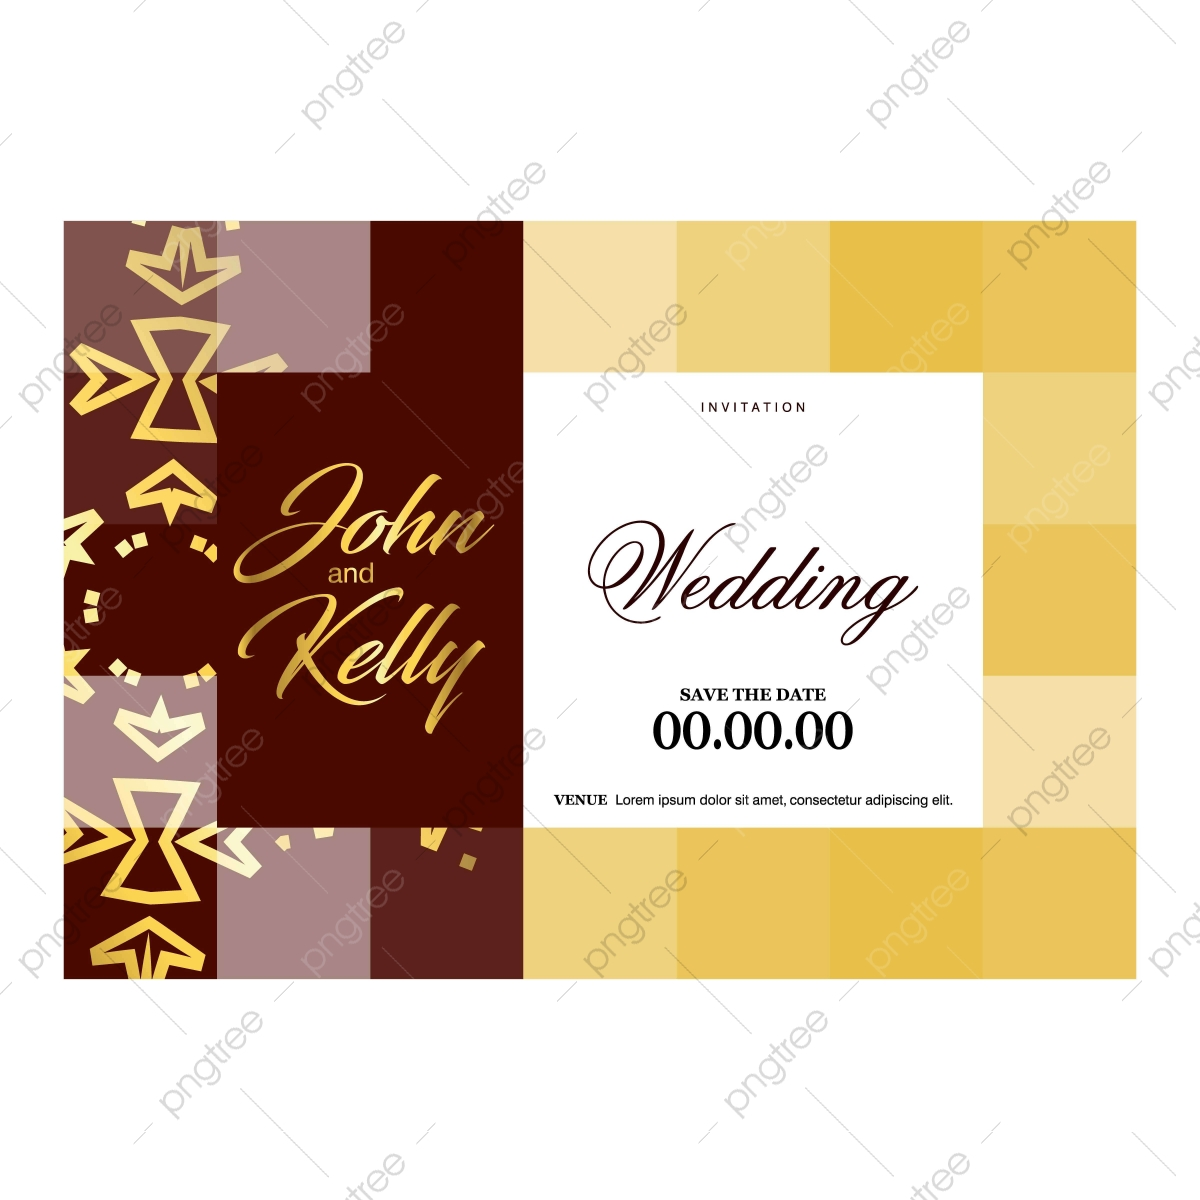 Wedding Ceremony Card With Elegent Design And Typography